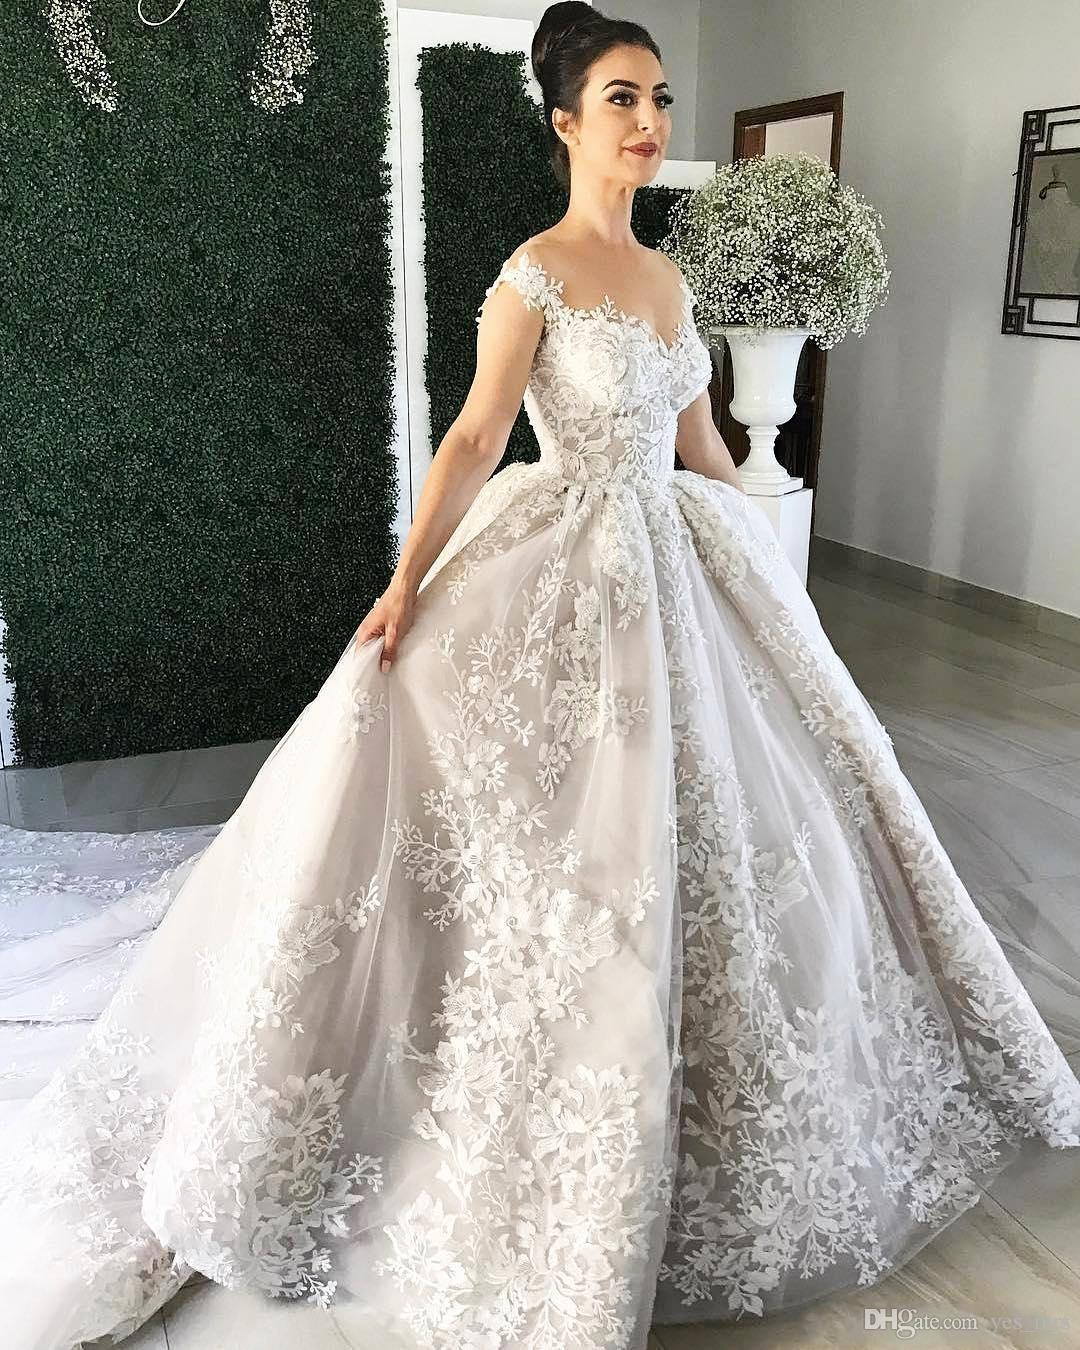 2019 Luxury Arabic Ball Gown Wedding Dresses Sheer Neckline Appliqued Lace 3D  Flowers Button Back Chapel Train Puffy Plus Size Bridal Gowns China Wedding  ... 33967856c6dd